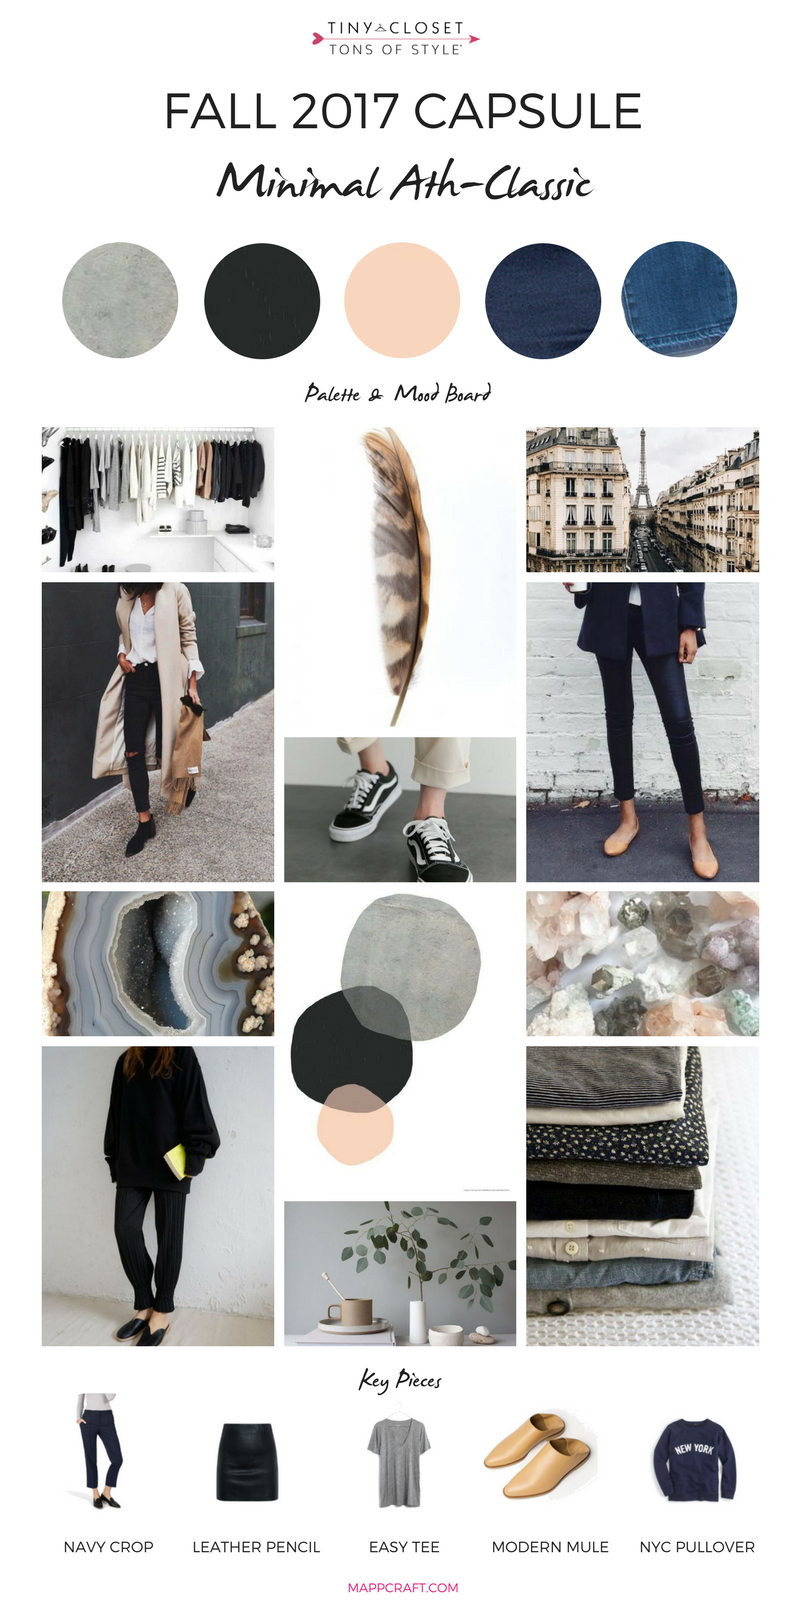 MappCraft | Fall 2017 Minimalist Mood Board